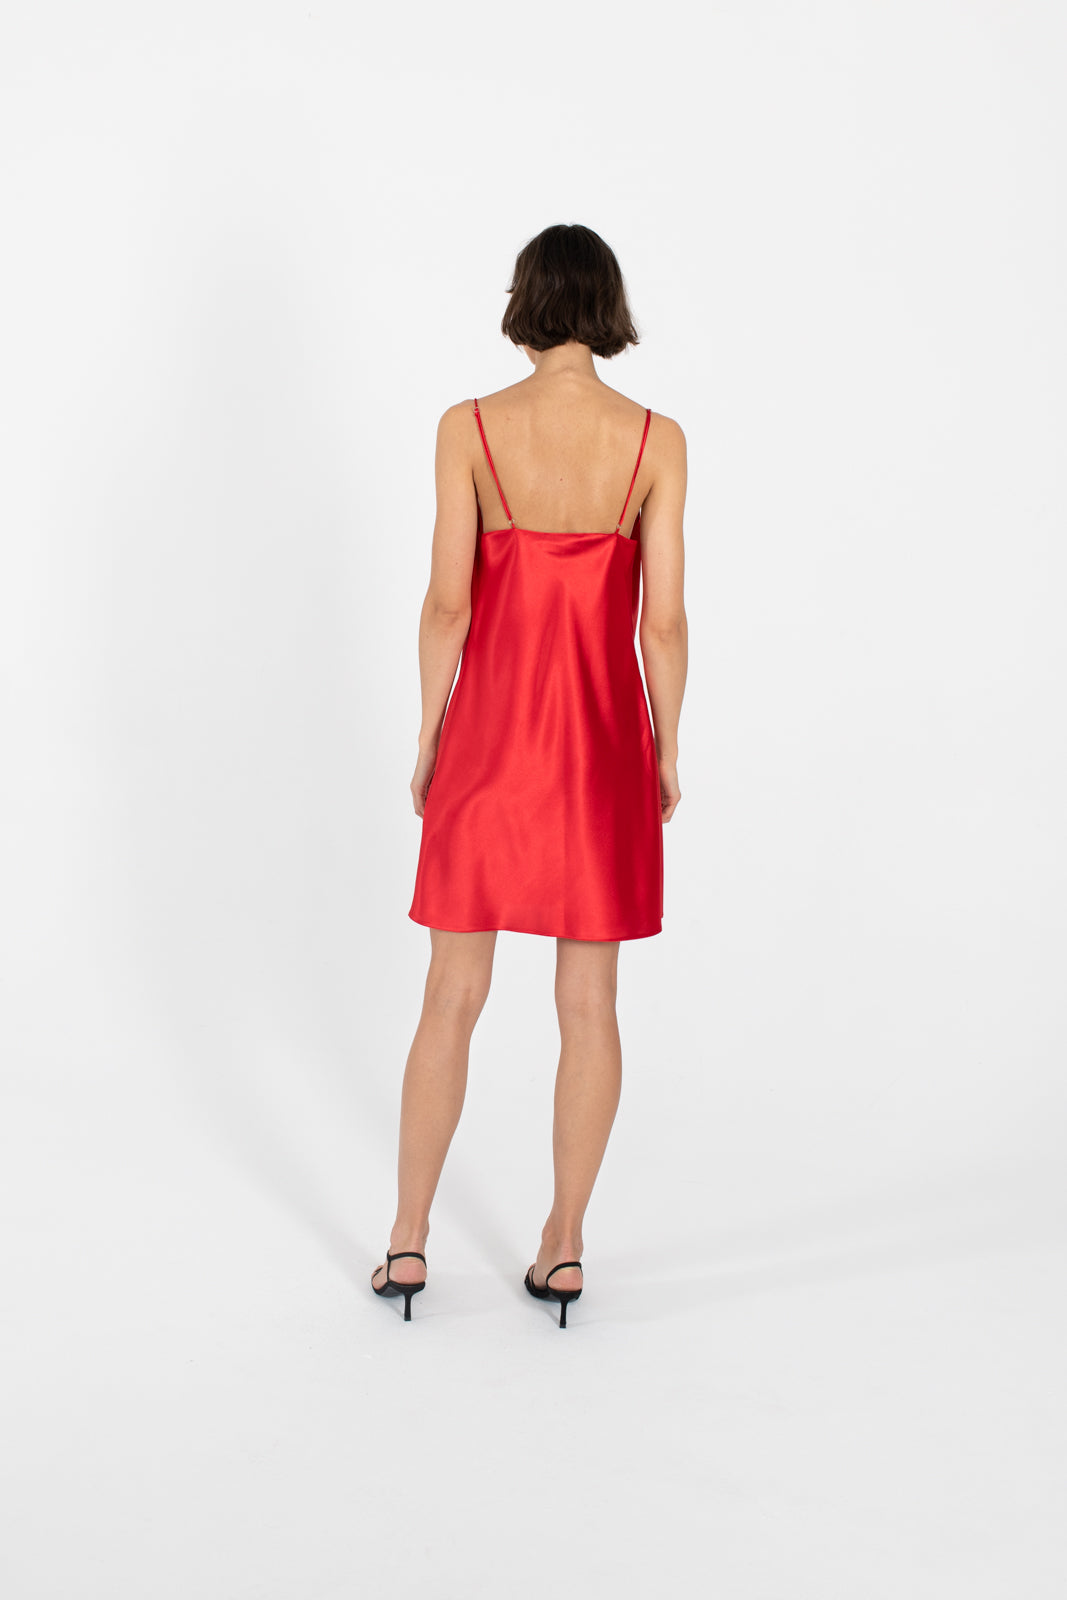 NUDIST-Deep-red-slip-on-dress-alternative-silk-cowl-summer-le-slap-spaghetti-straps.jpg